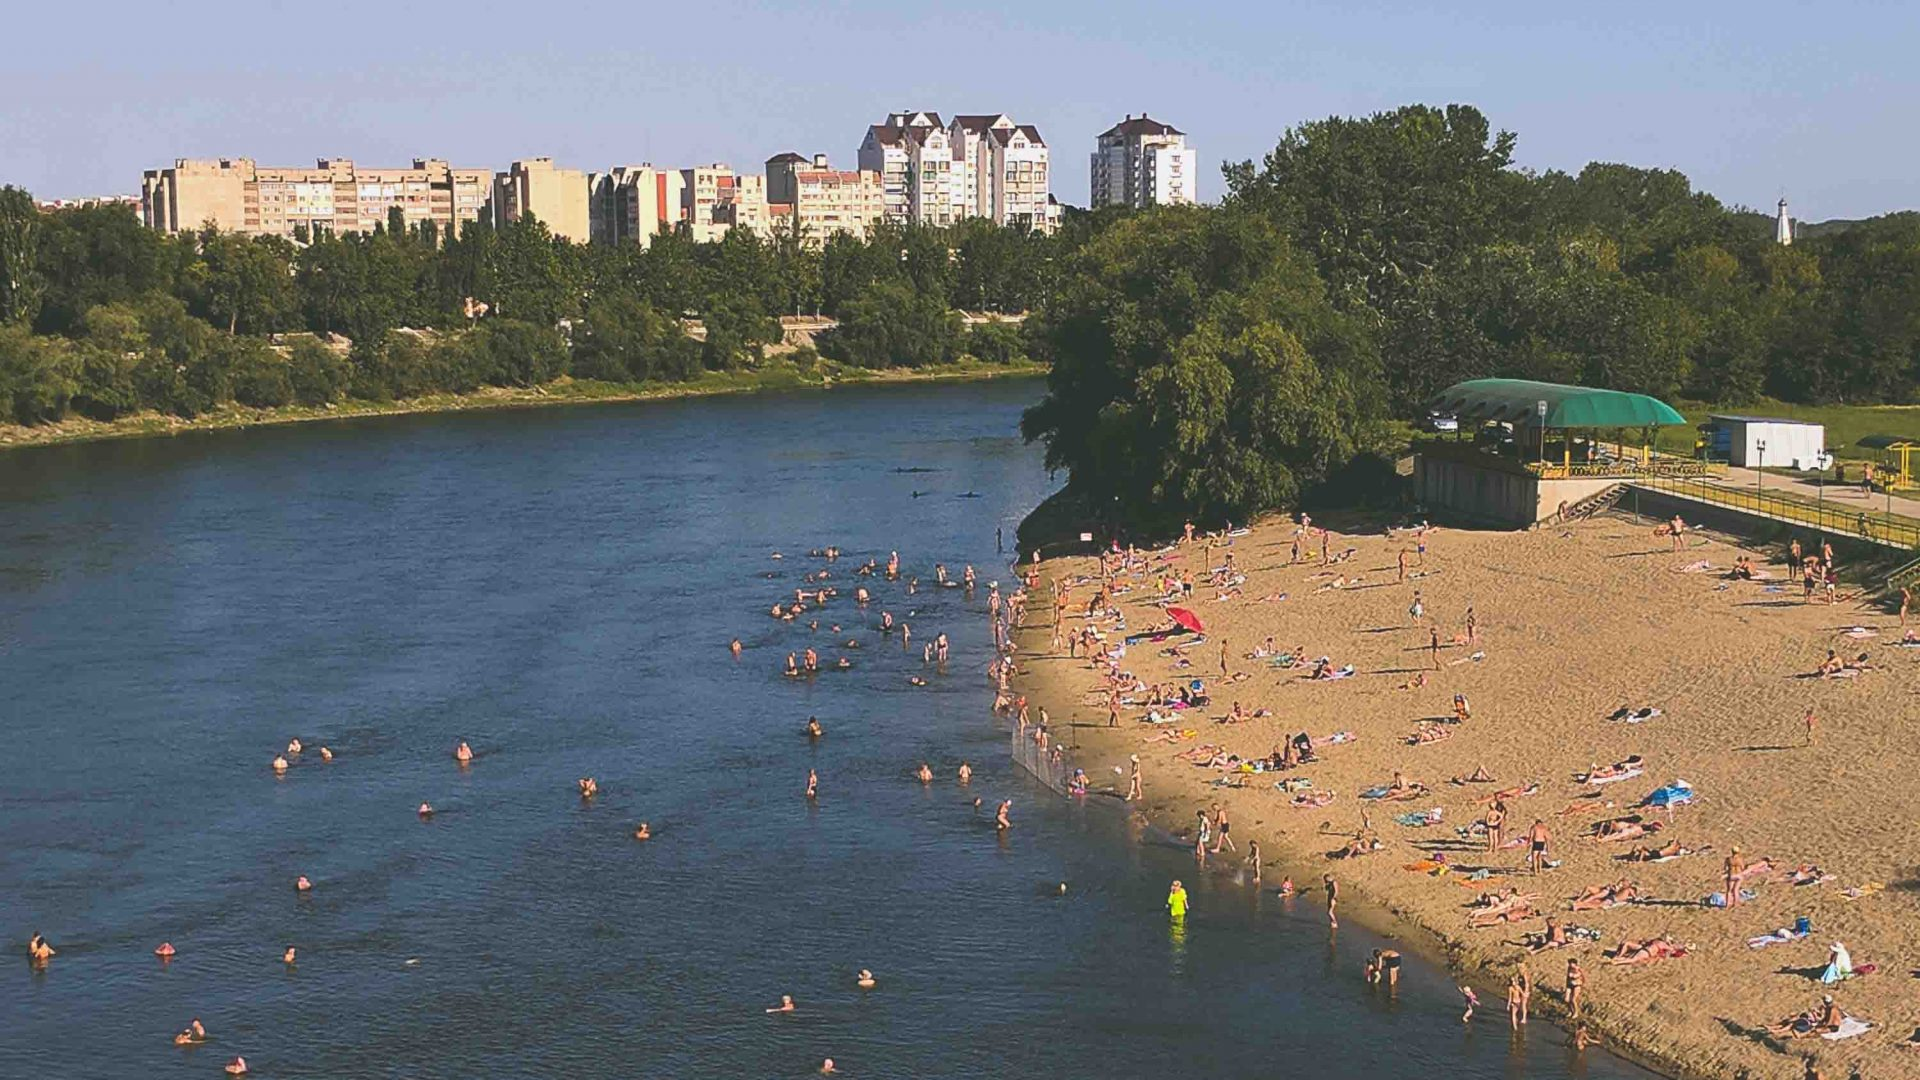 Locals head to the beach by the Dniester River for a 'standing tan' in Transnistria.